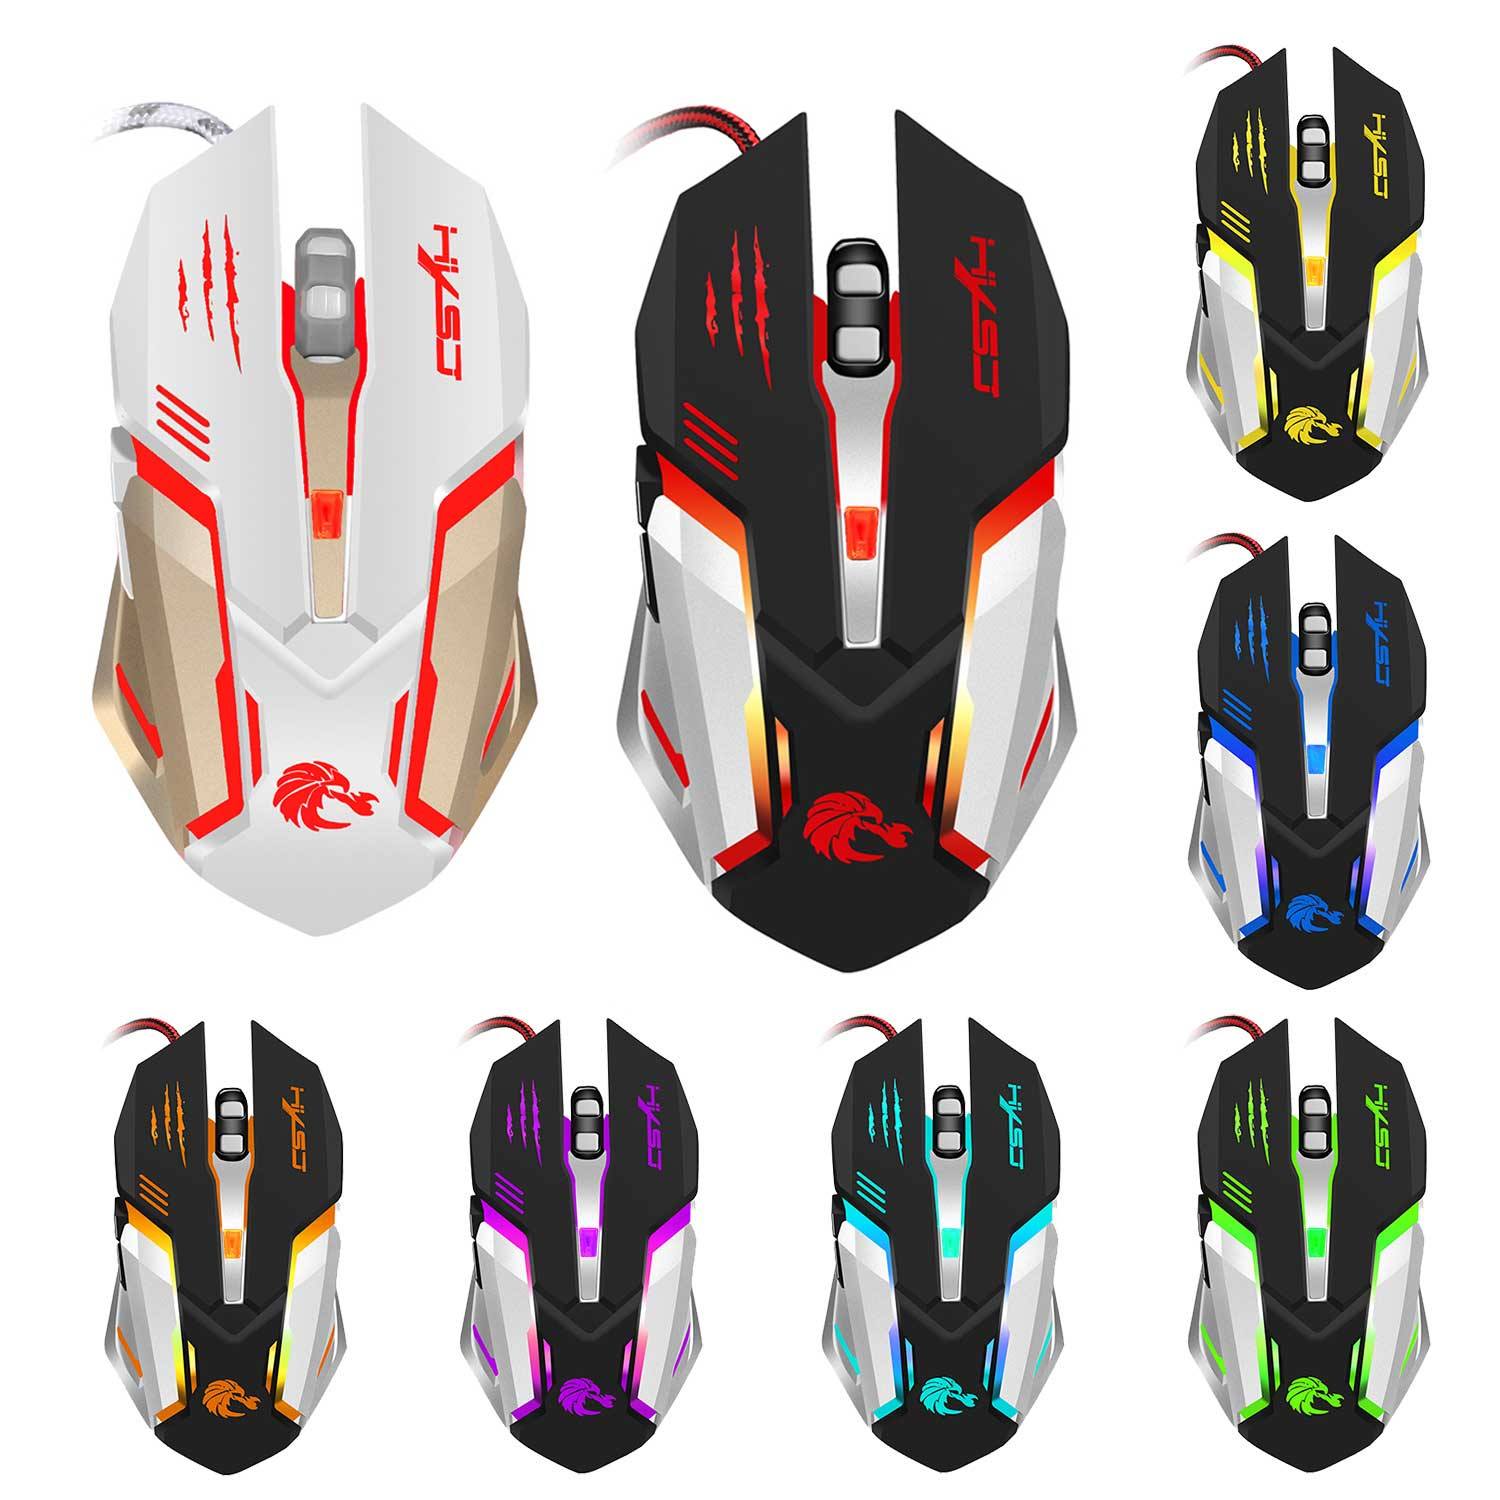 New LED Optical USB2.0 Wired Gaming Mouse Adjustable 5500DPI 6 Buttons Game Gamer PC Laptop Computer Mice QJY99